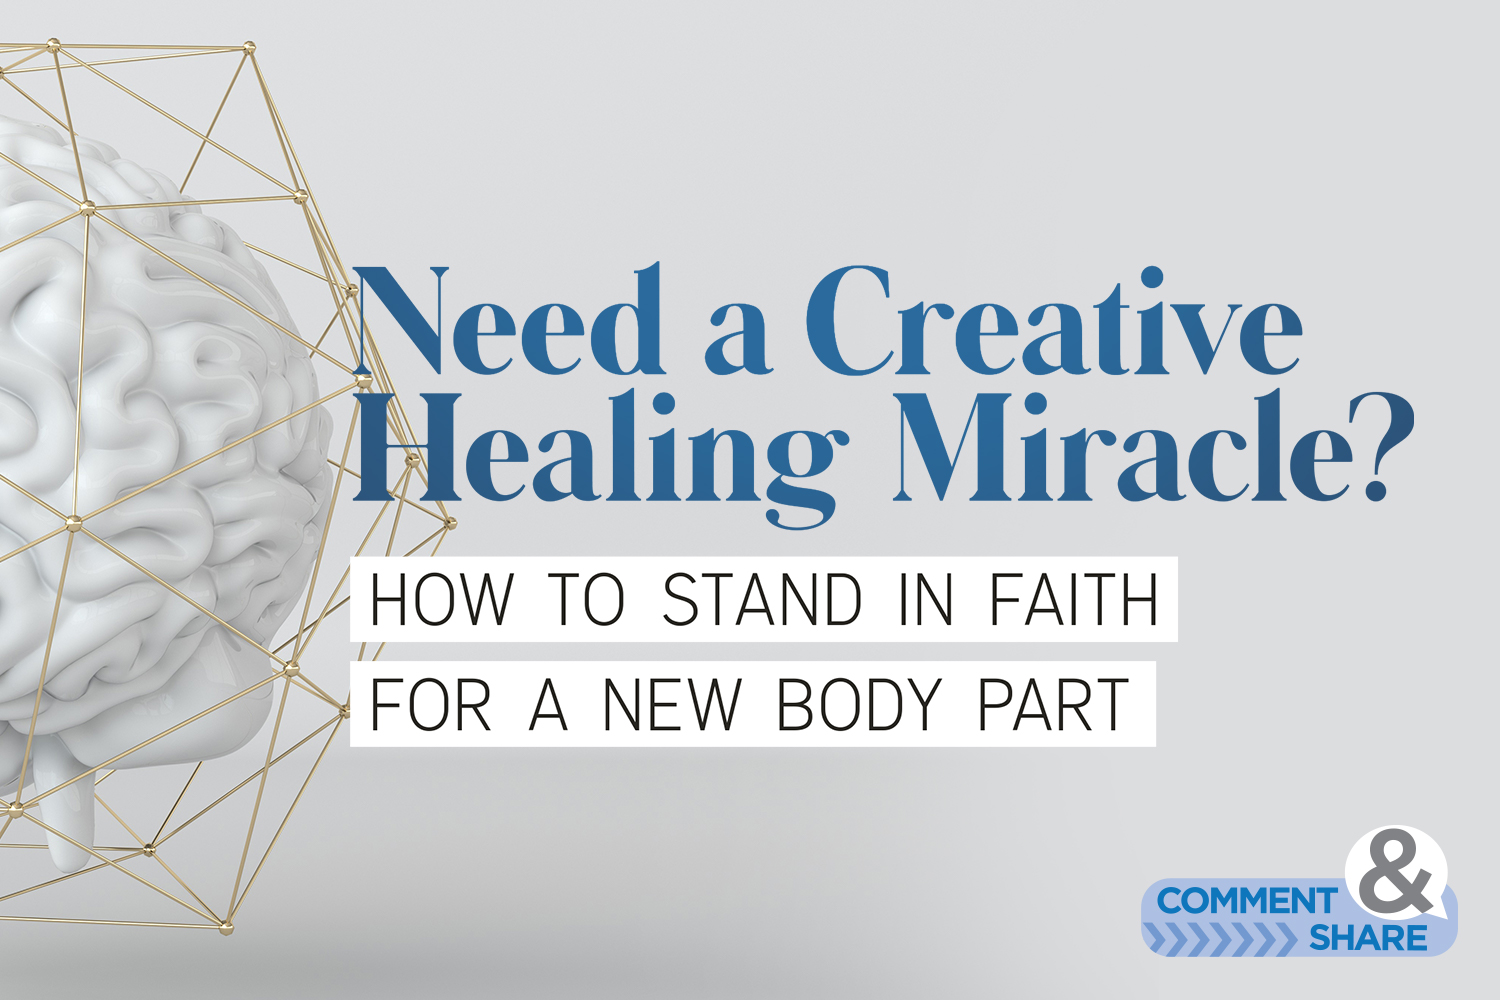 How to Stand in Faith for a New Body Part